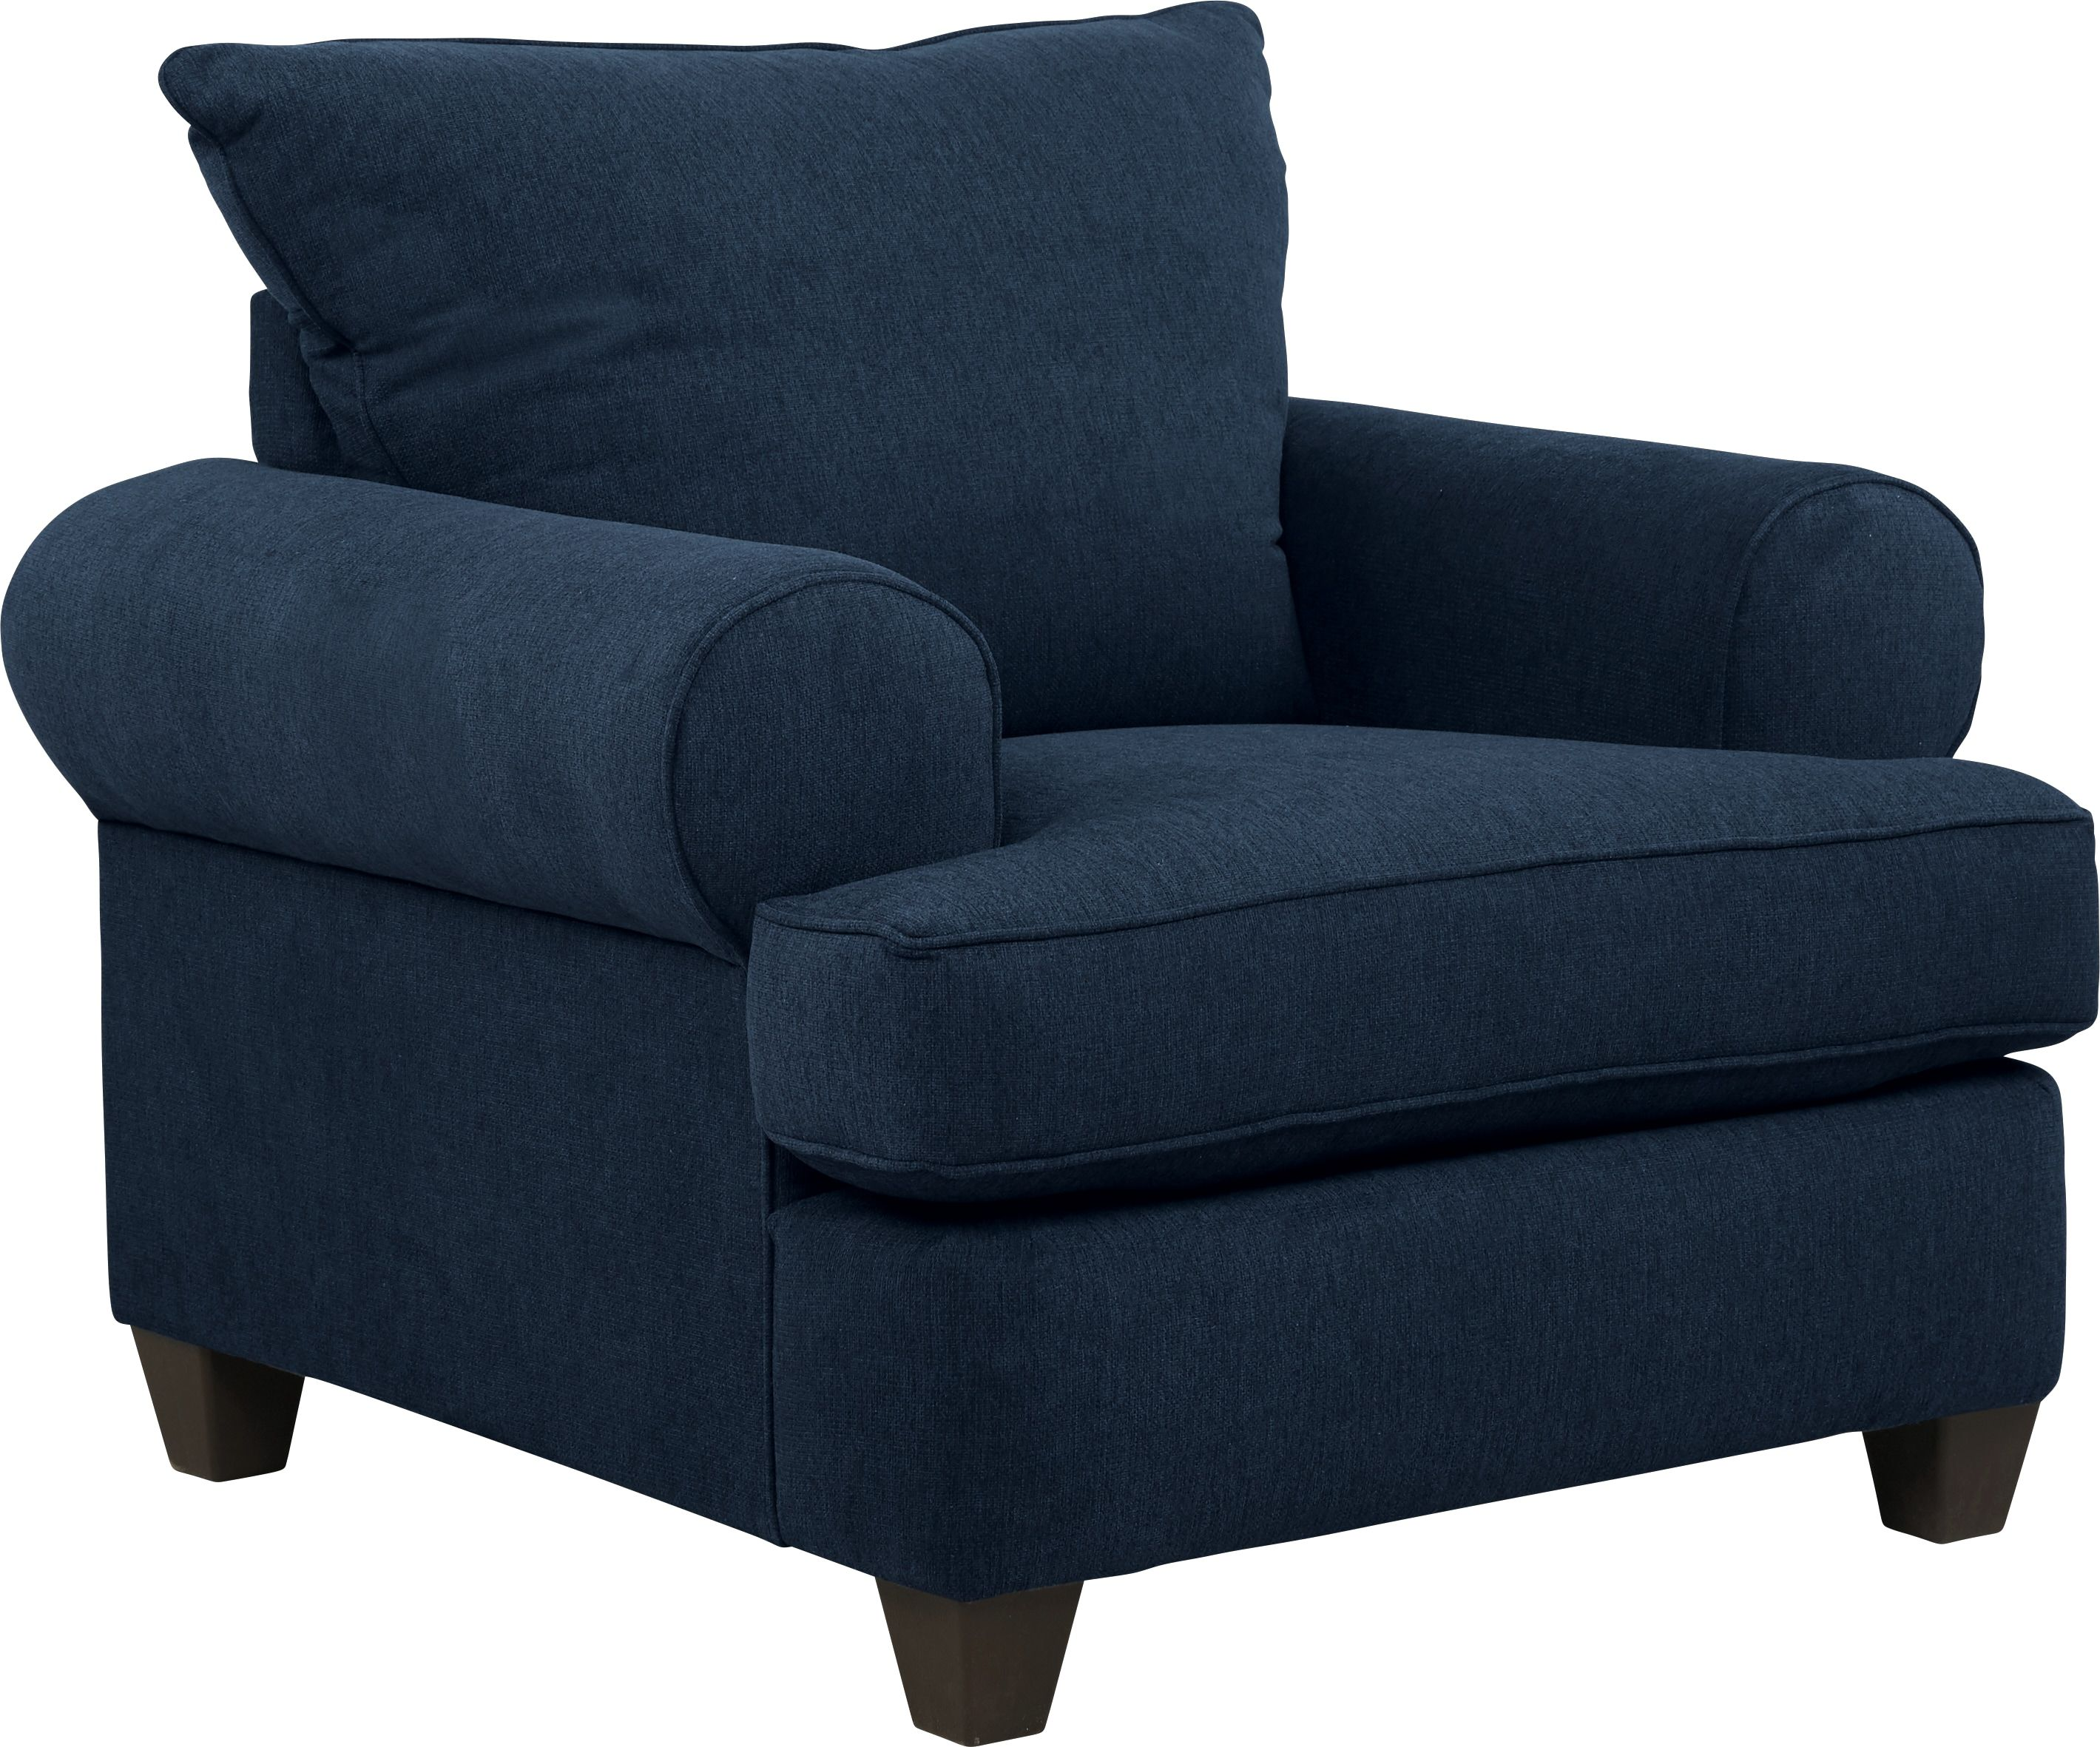 Emsworth navy chair chair style living room chairs